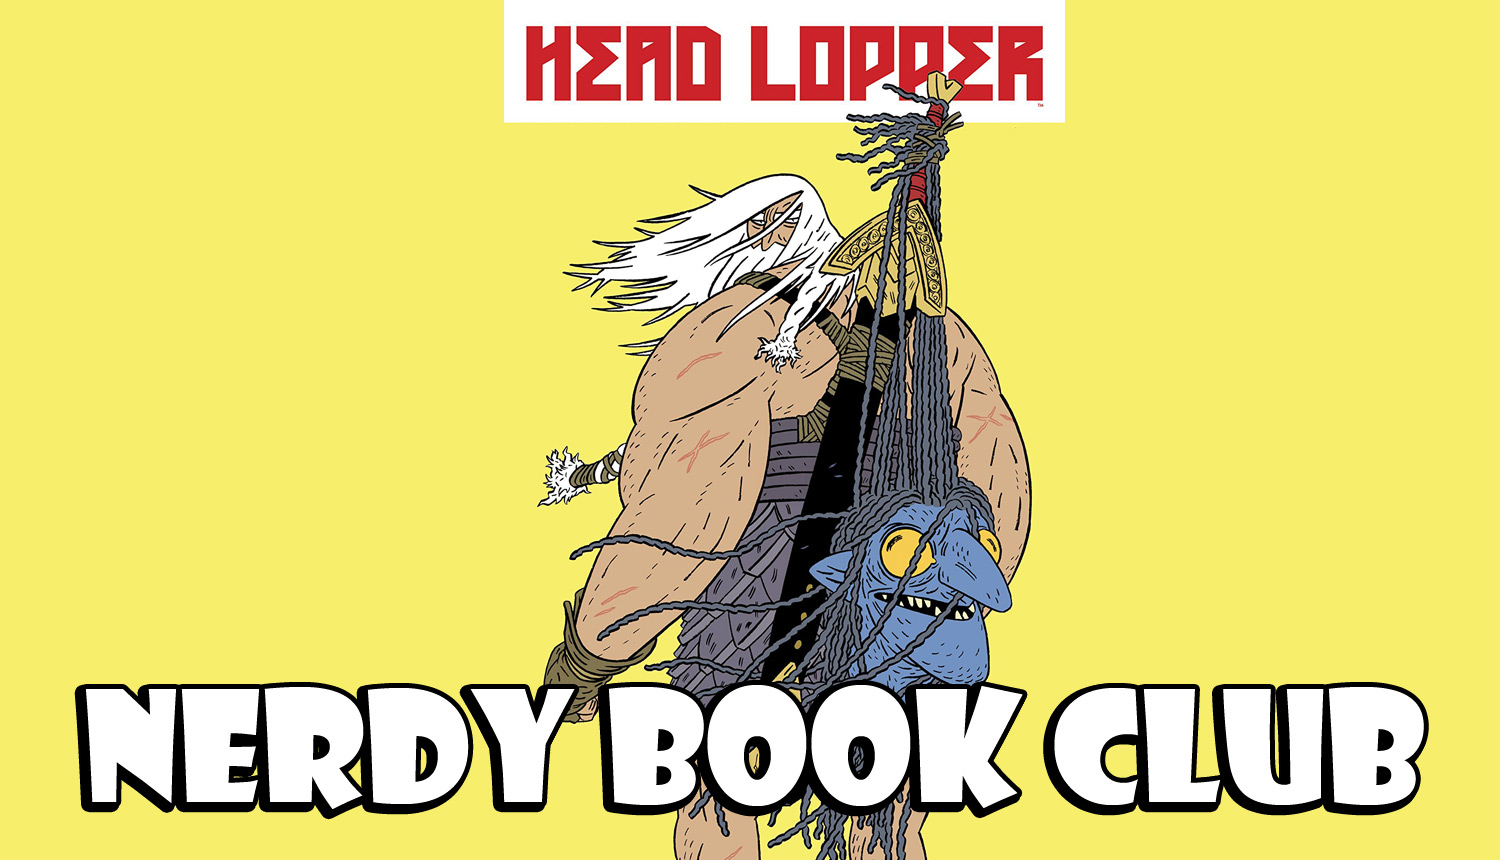 Nerdy Book Club - Head Lopper